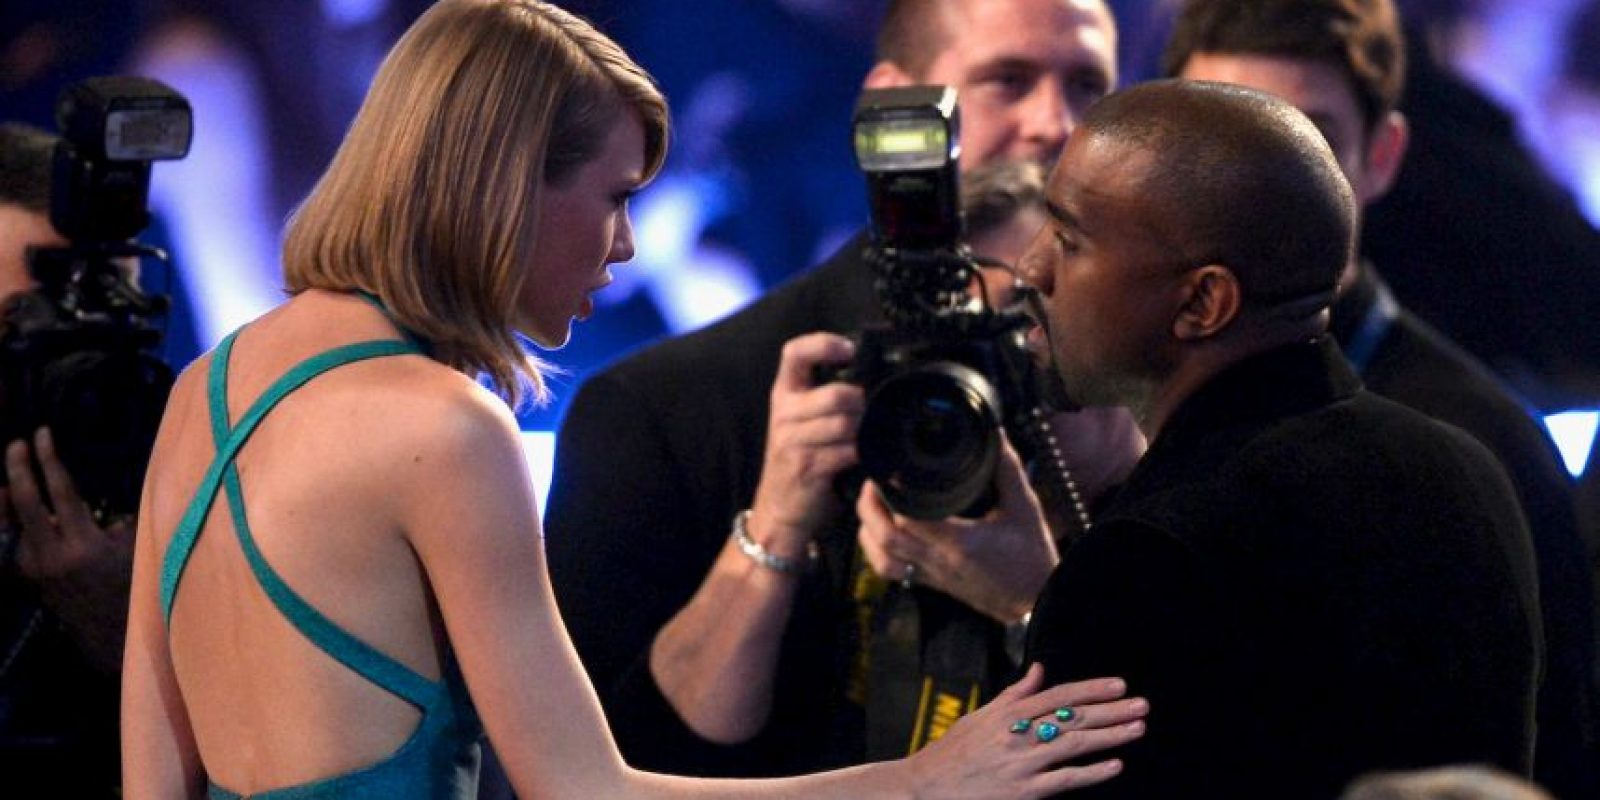 Taylor con Kanye West Foto:Getty Images